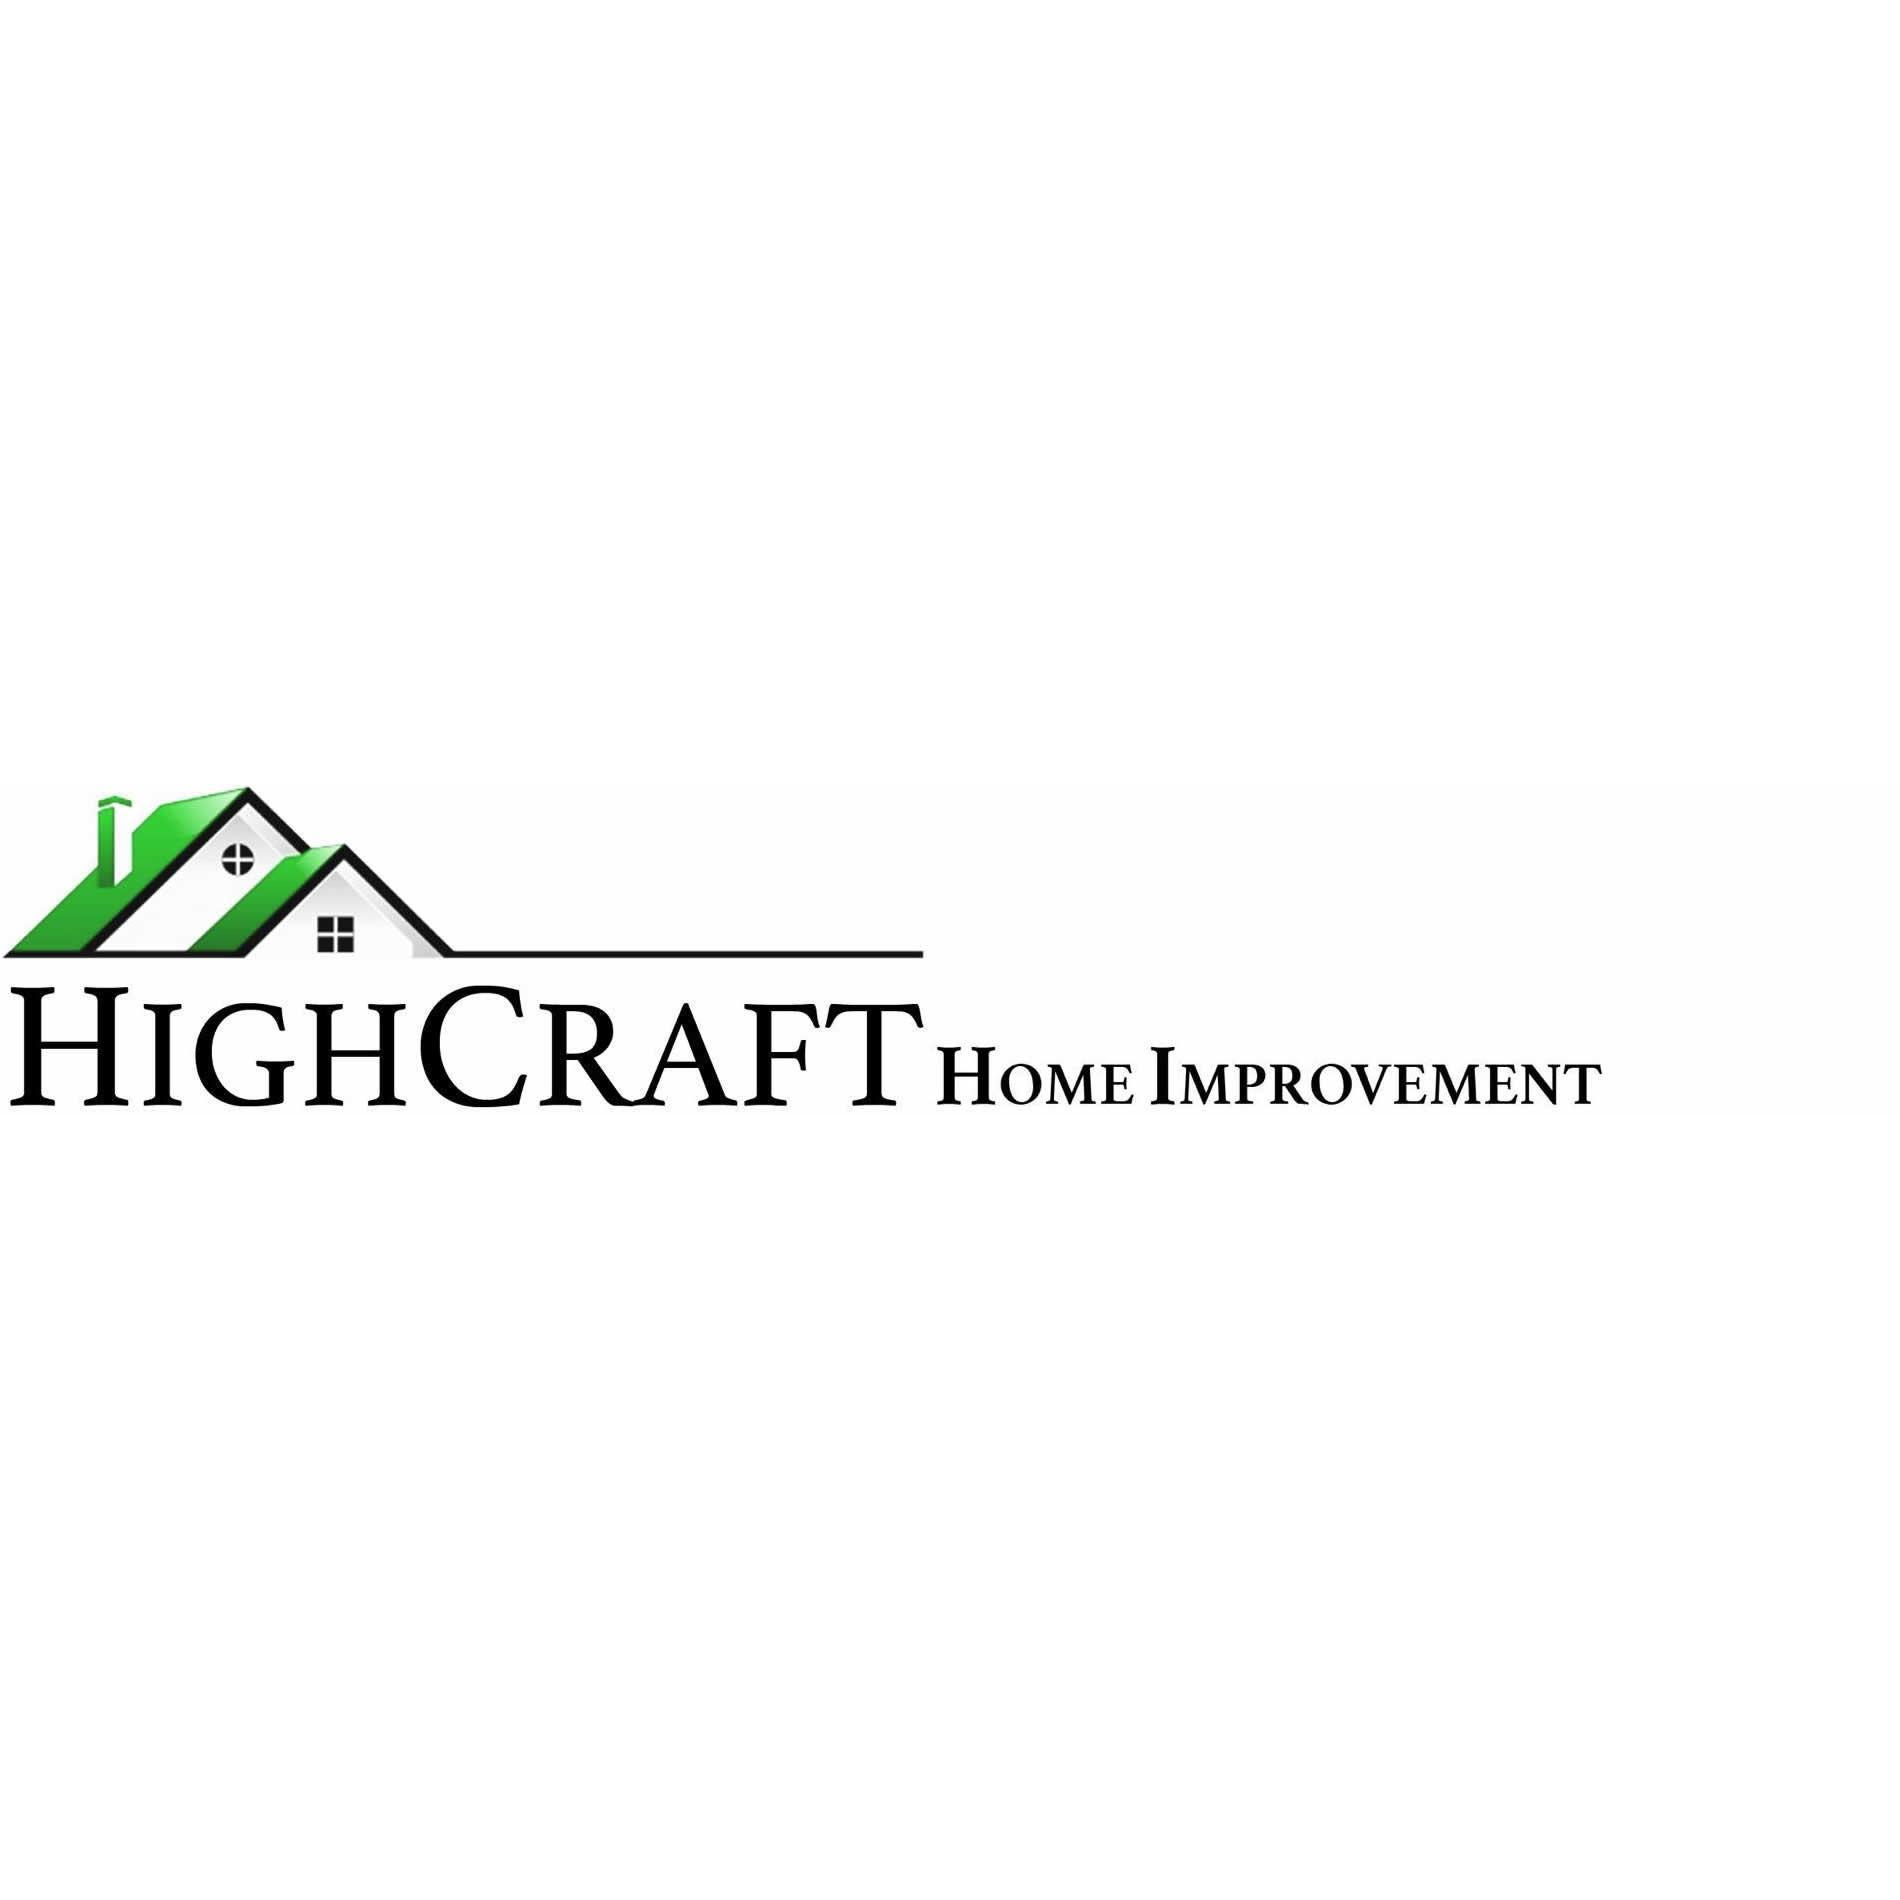 High Craft Home Improvement